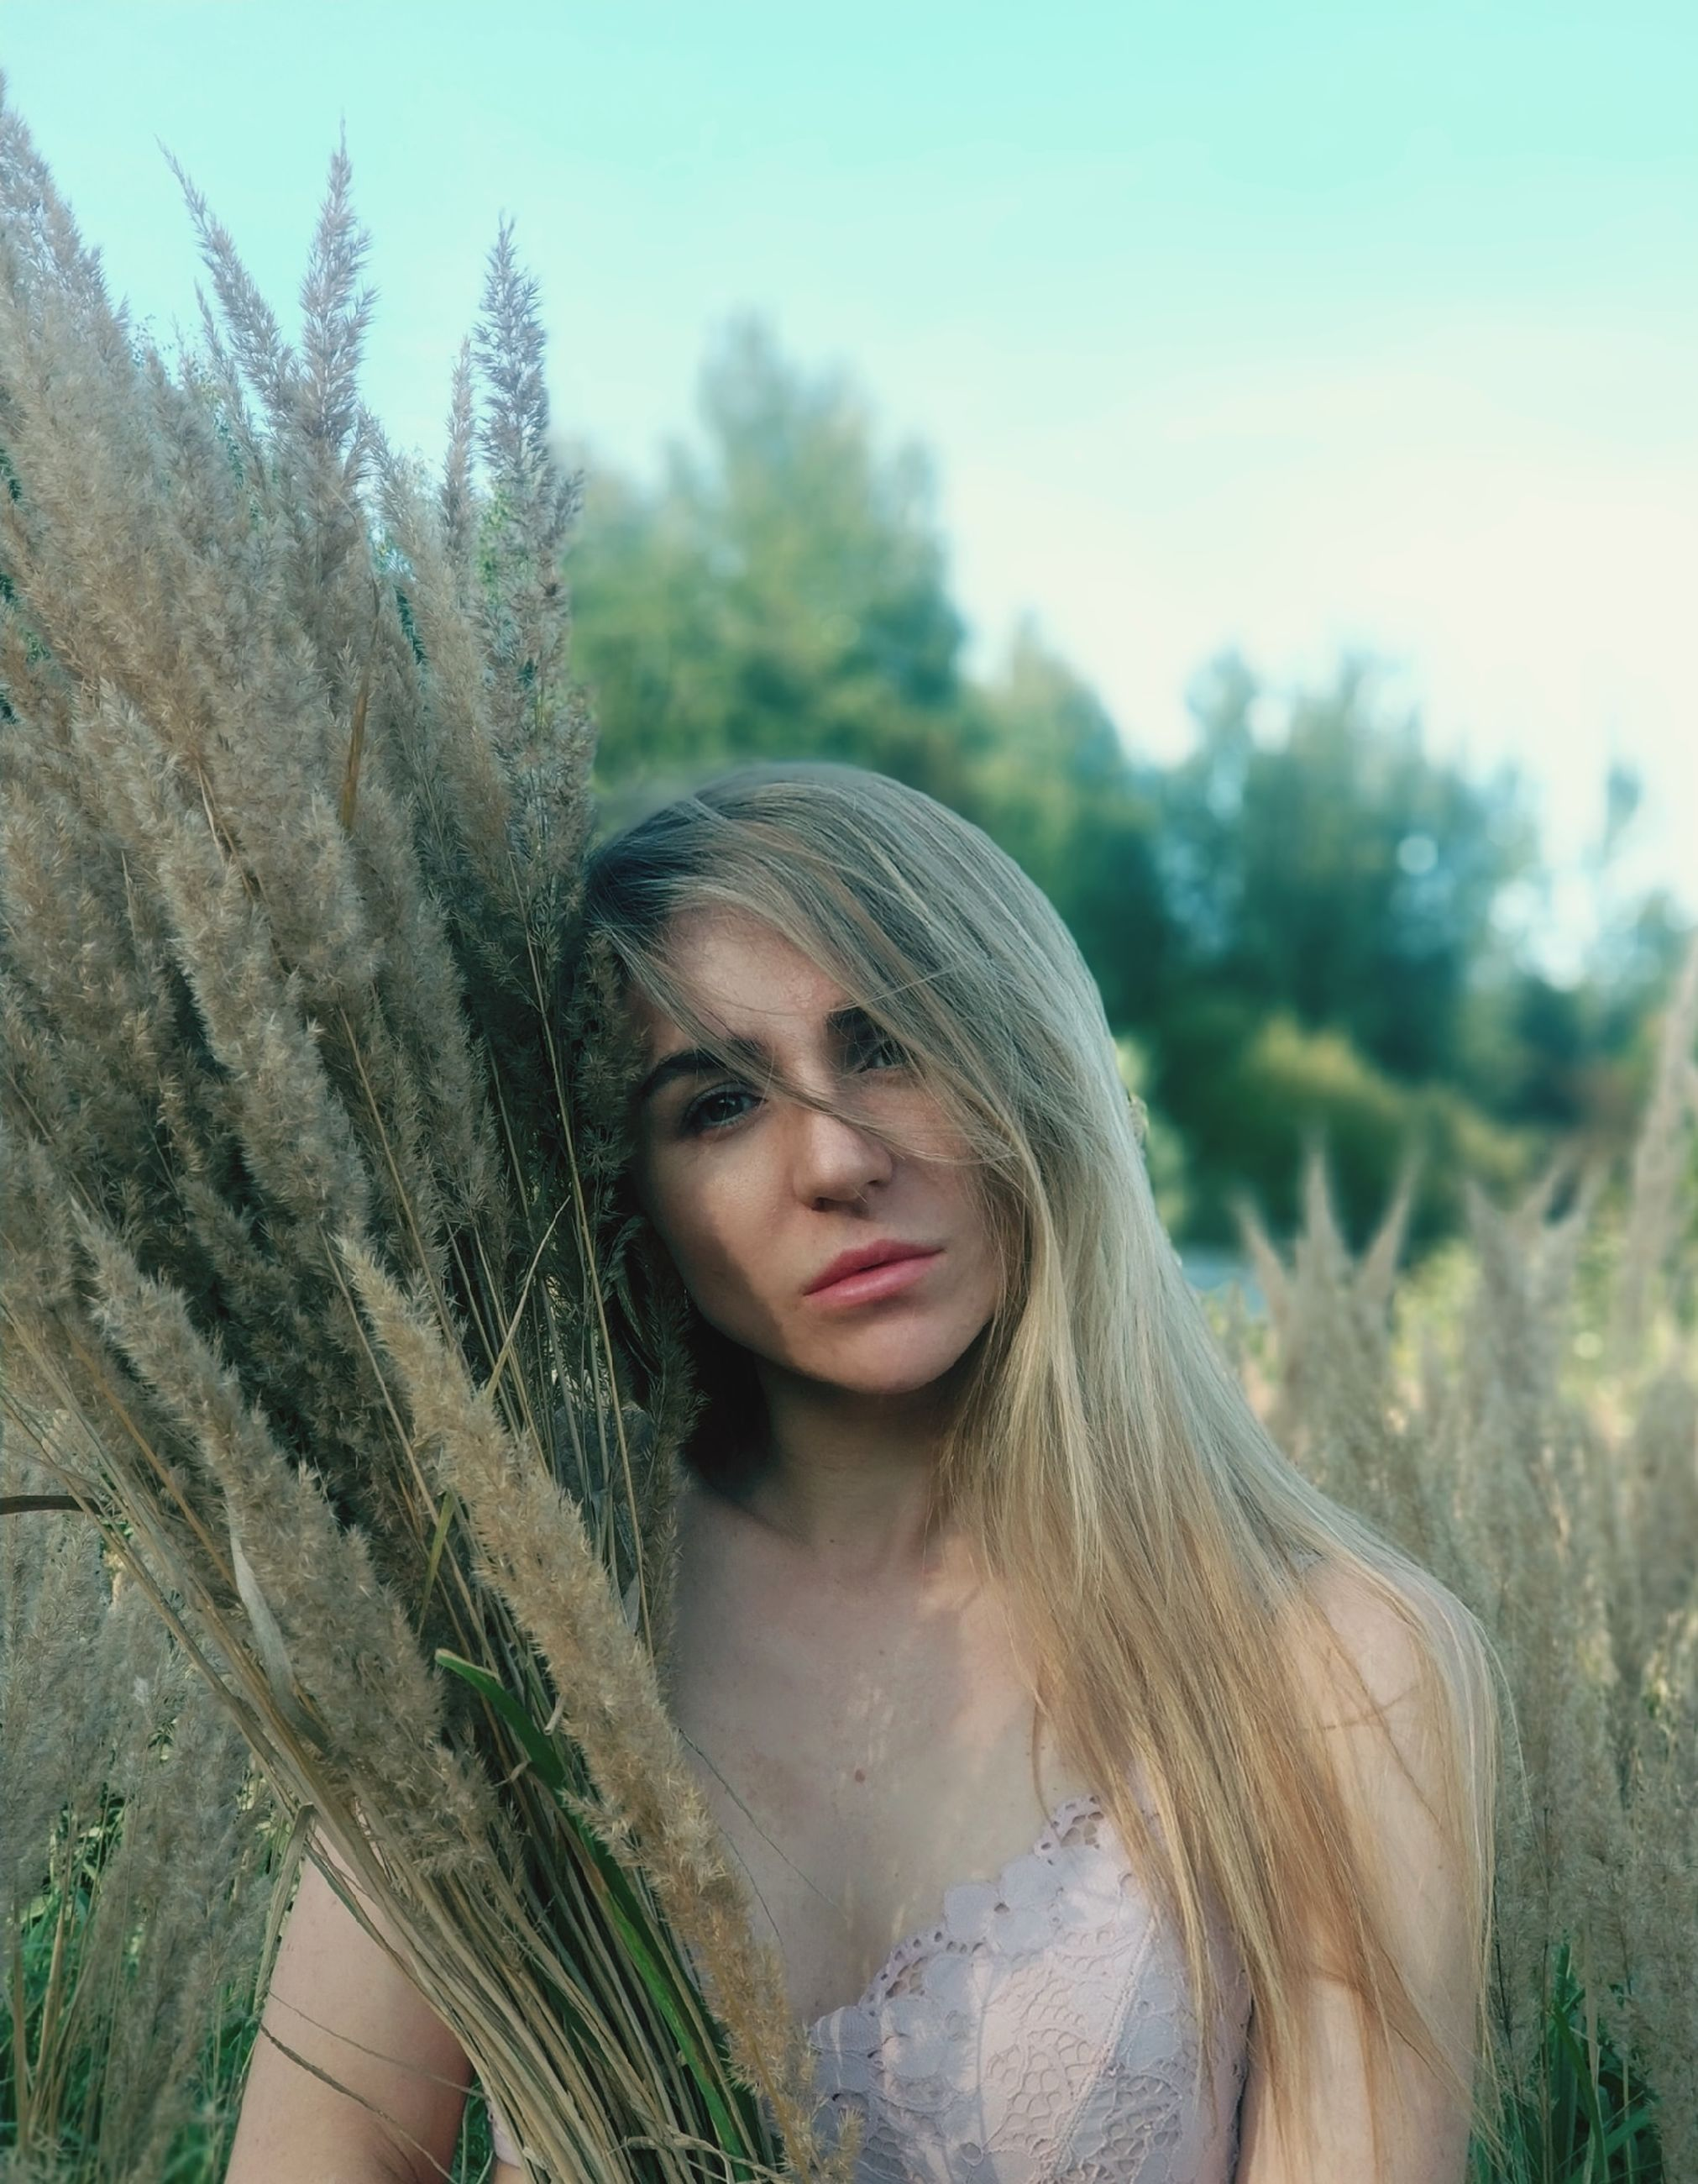 plant, one person, real people, young adult, long hair, hair, young women, lifestyles, land, women, portrait, leisure activity, hairstyle, beautiful woman, nature, tree, front view, day, outdoors